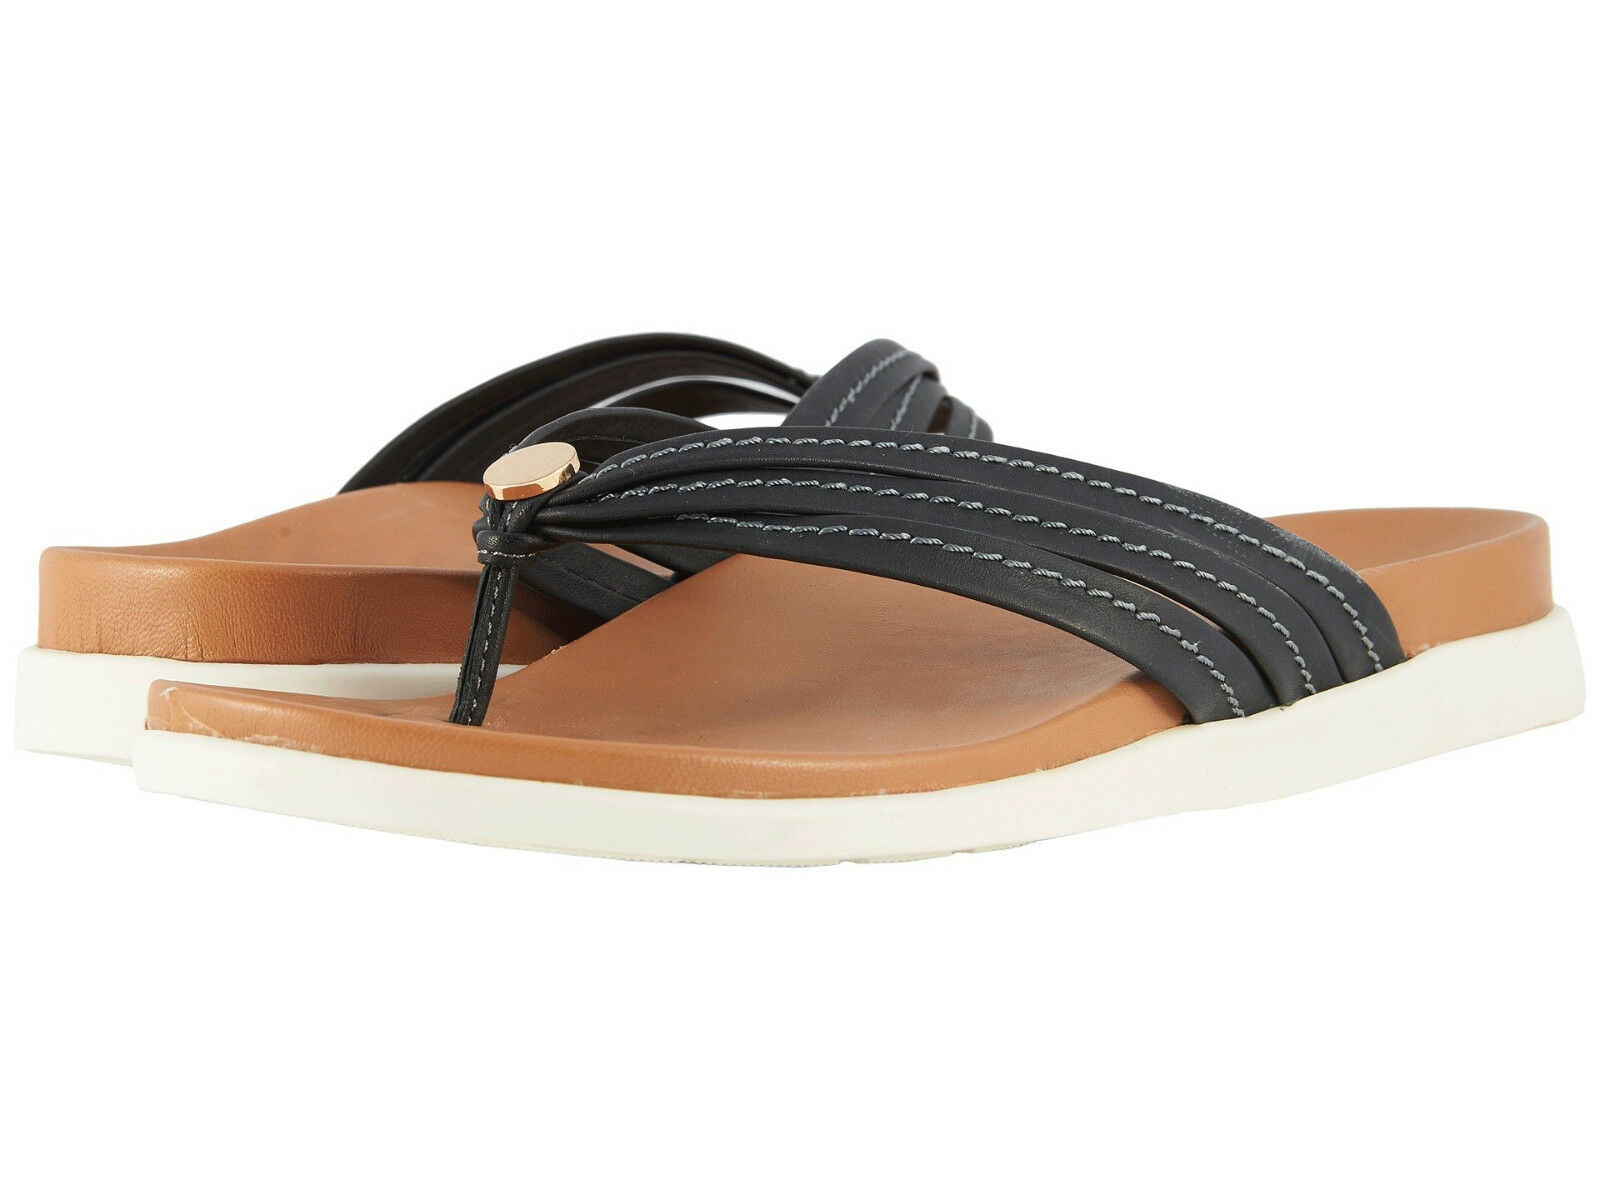 Women Vionic Catalina Flipflop Sandal Palm Catalina Black 100% Authentic New